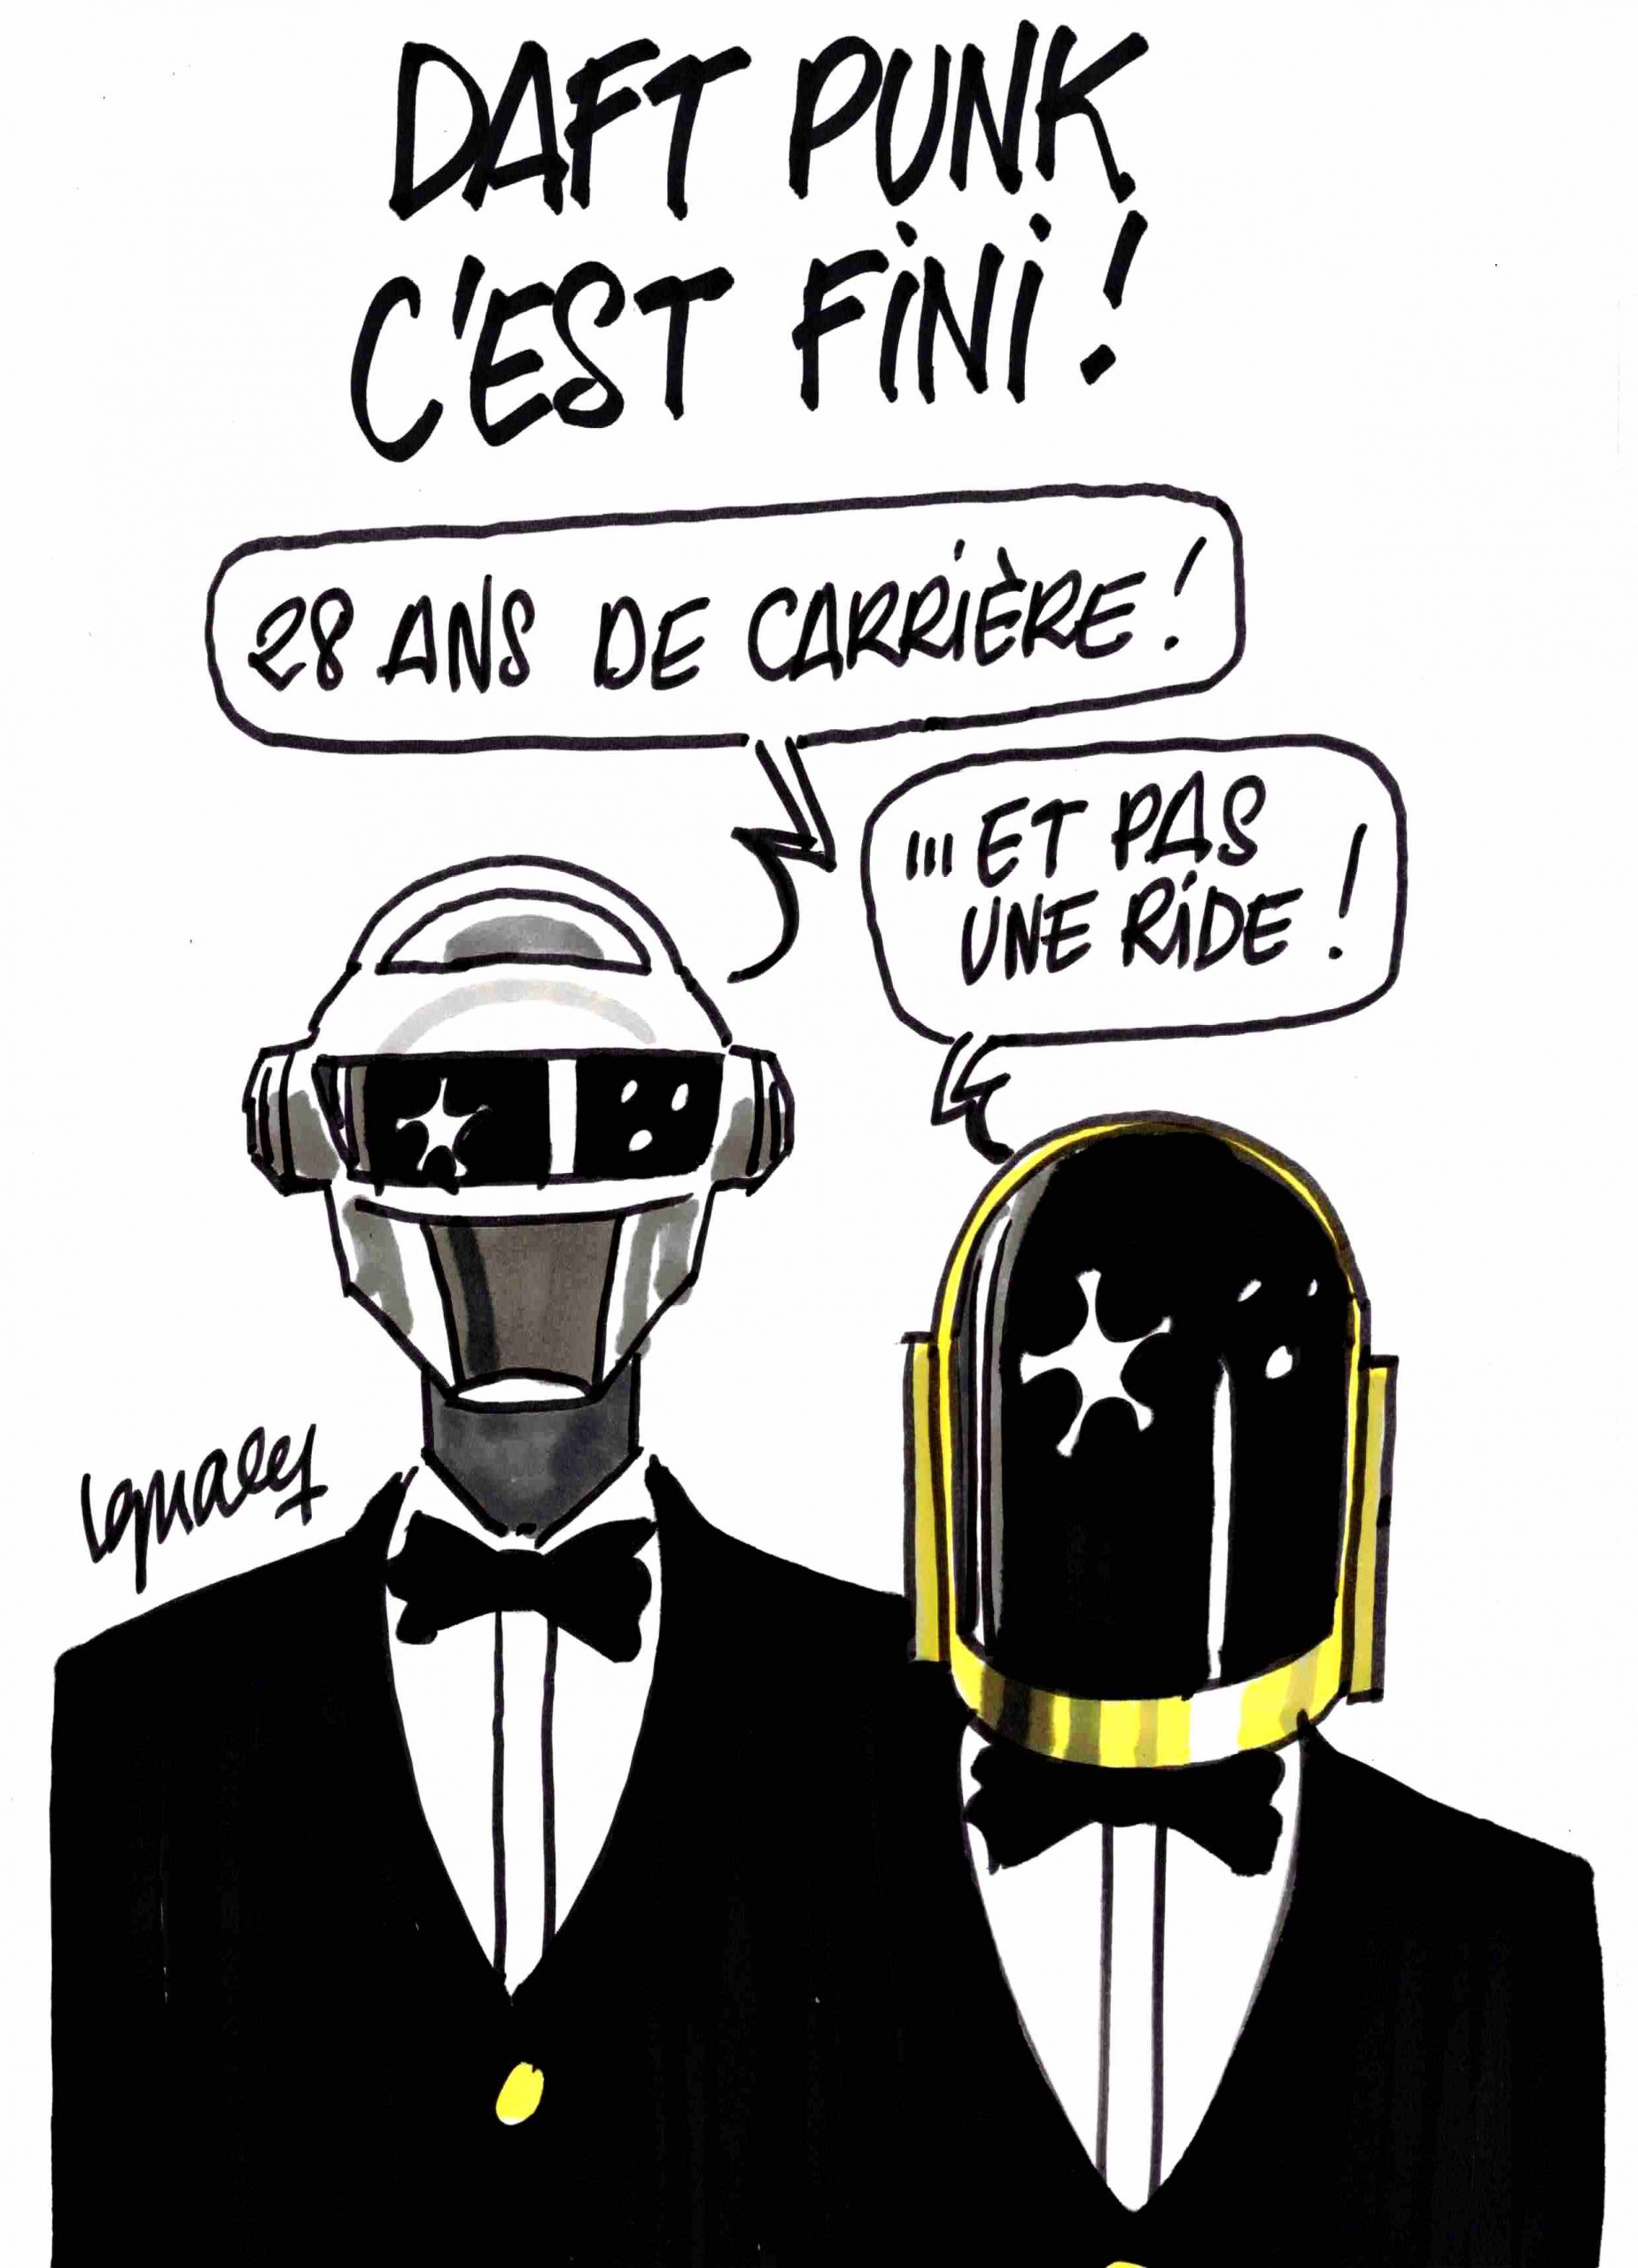 Ignace - Daft Punk, c'est fini !